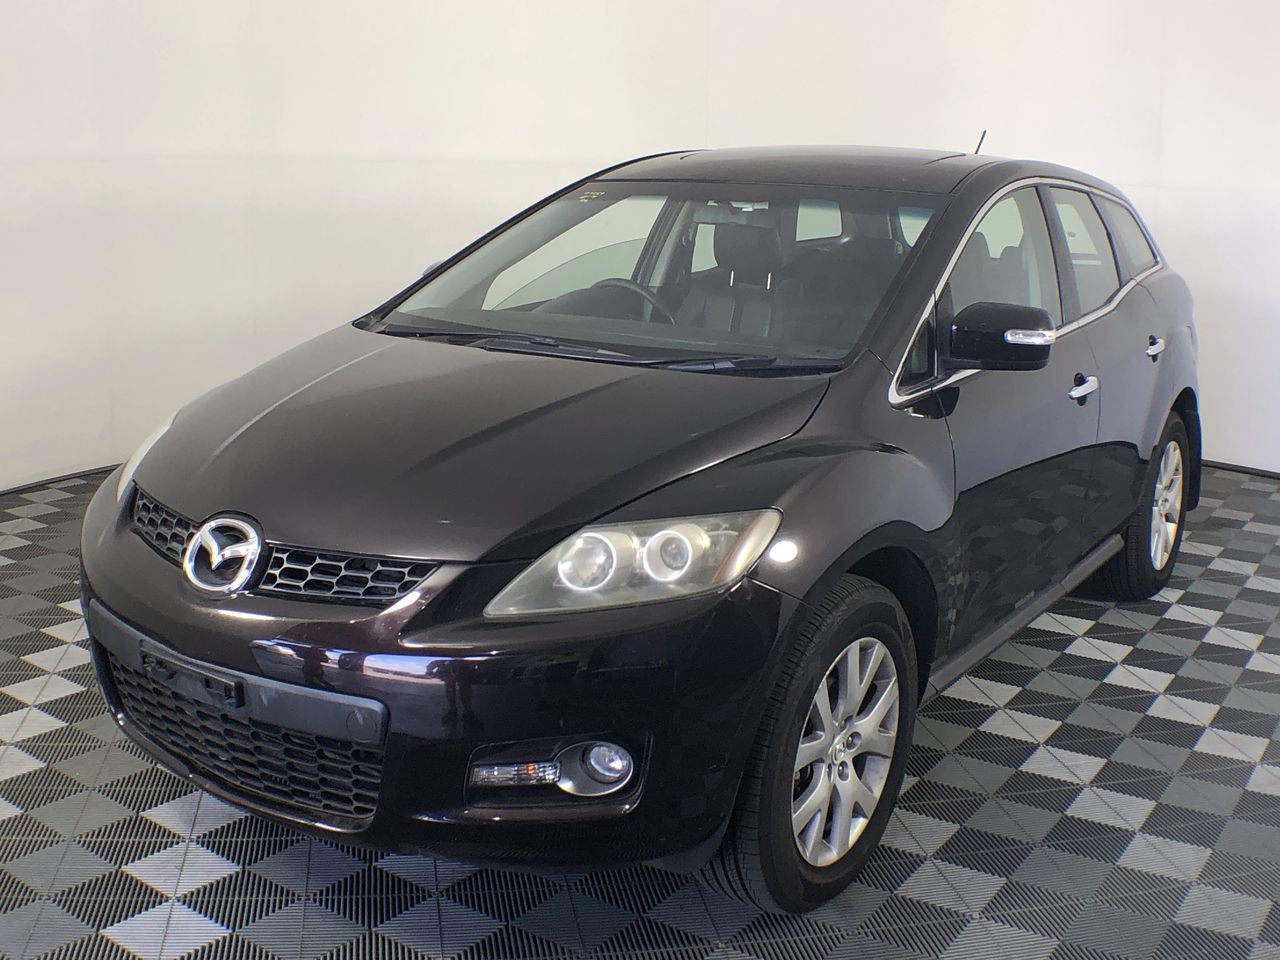 2008 Mazda CX-7 Luxury (4x4) Automatic Wagon